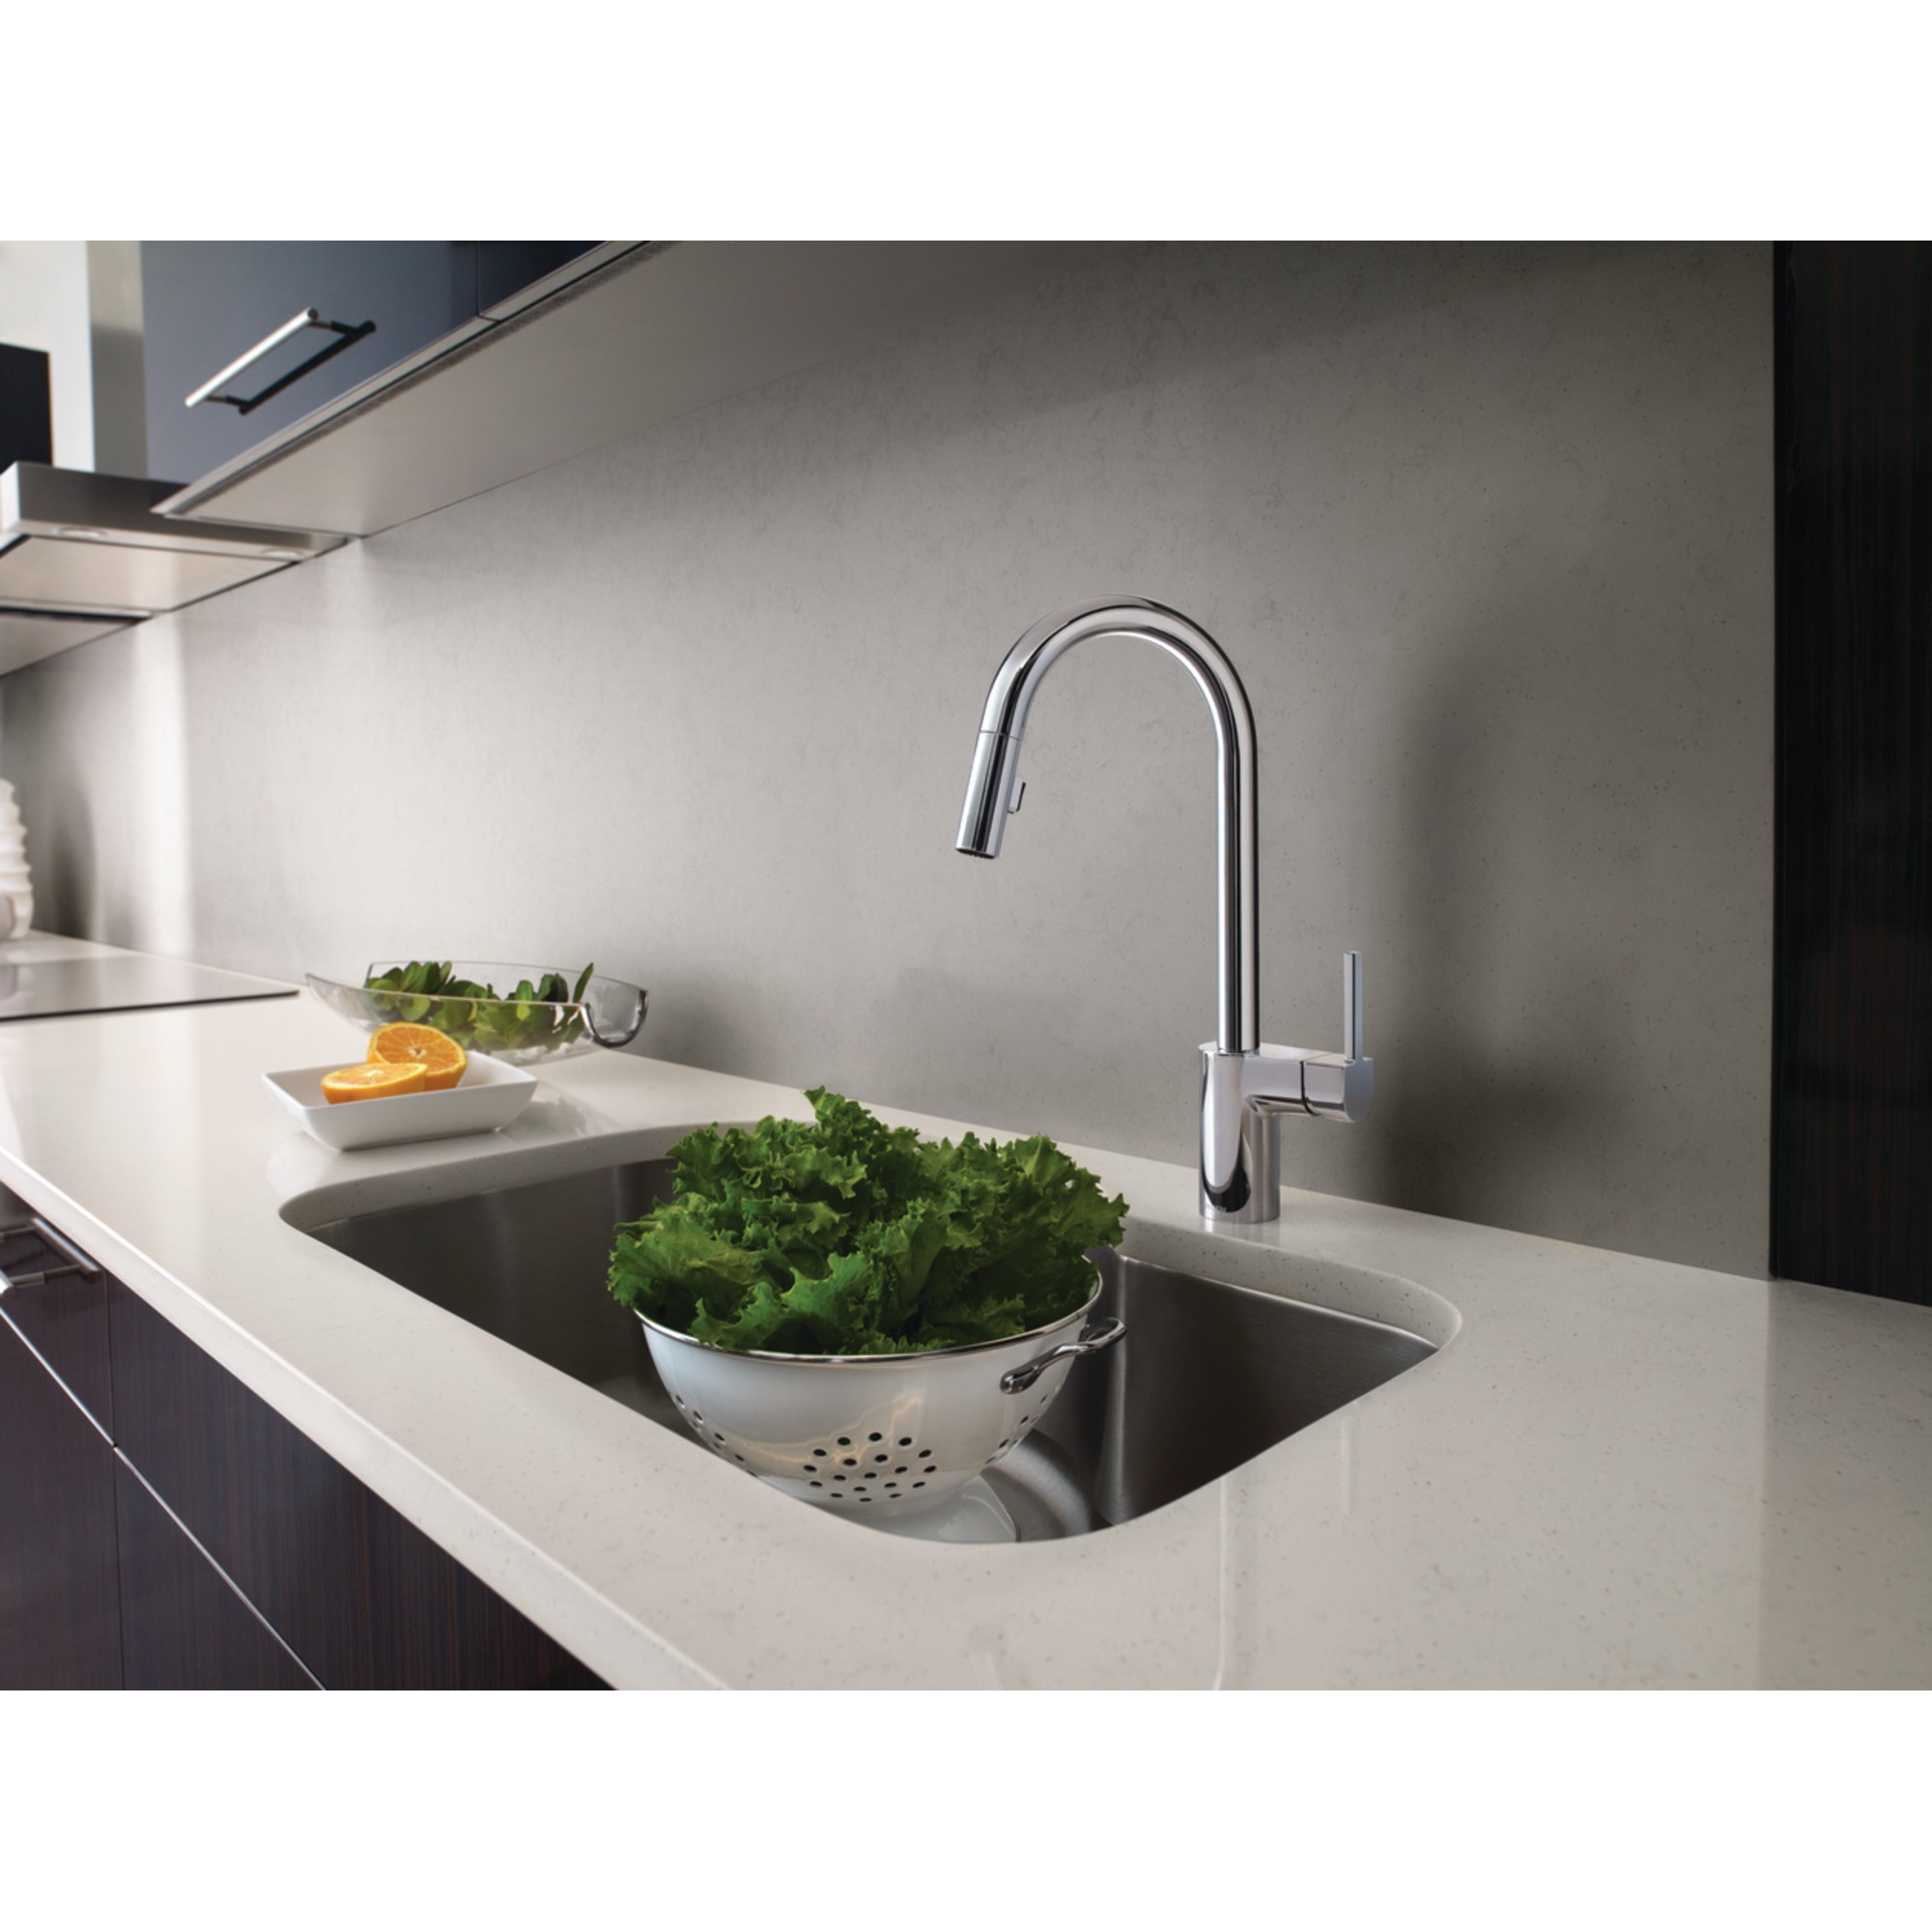 Brushed Nickel Kitchen Faucet | Kitchen Faucets At Lowes | Moen Faucet